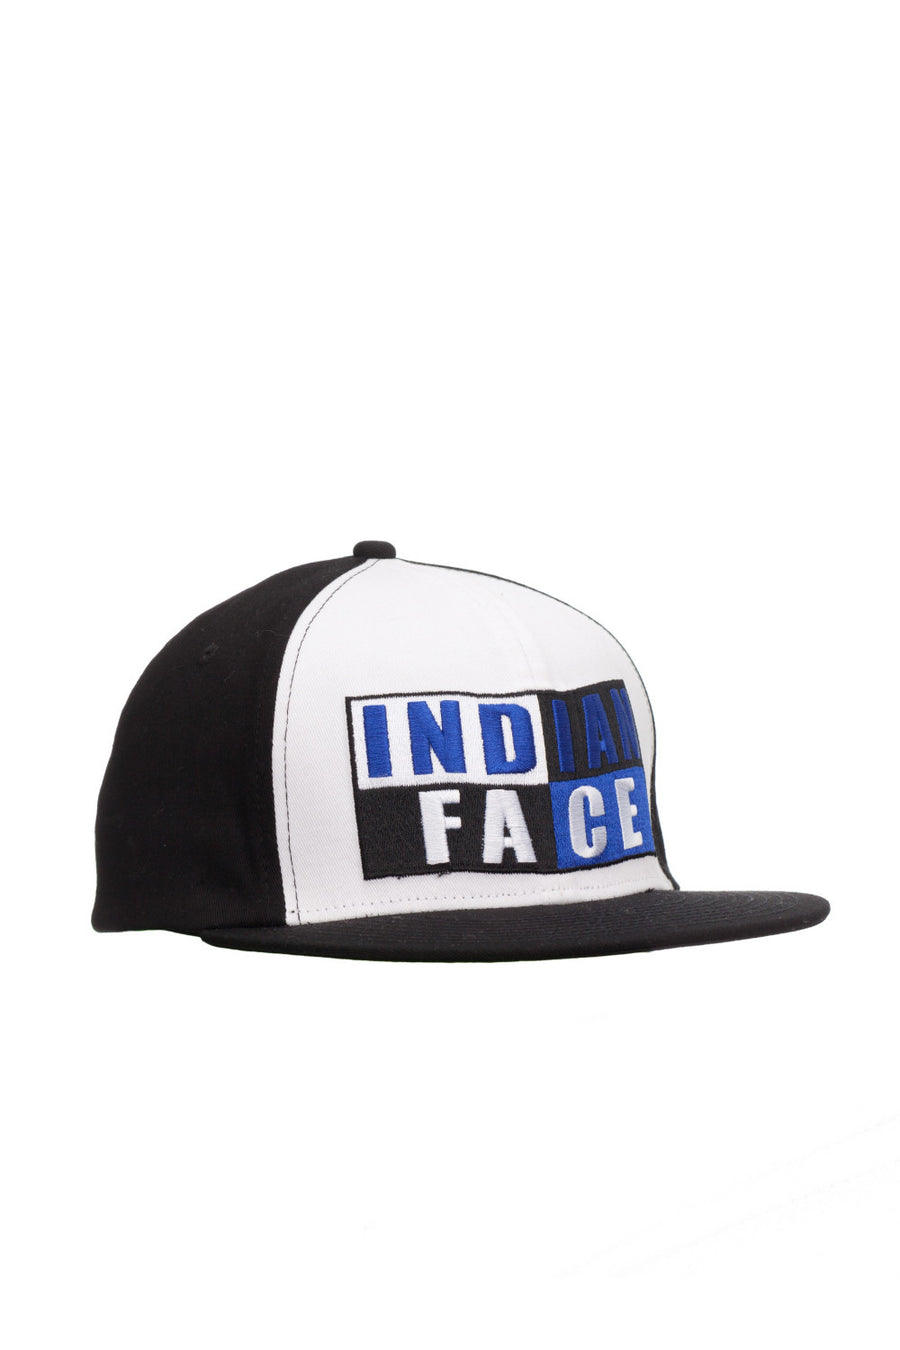 Gorra Santa Cruz Negra y Blanca - Gorras - The Indian Face